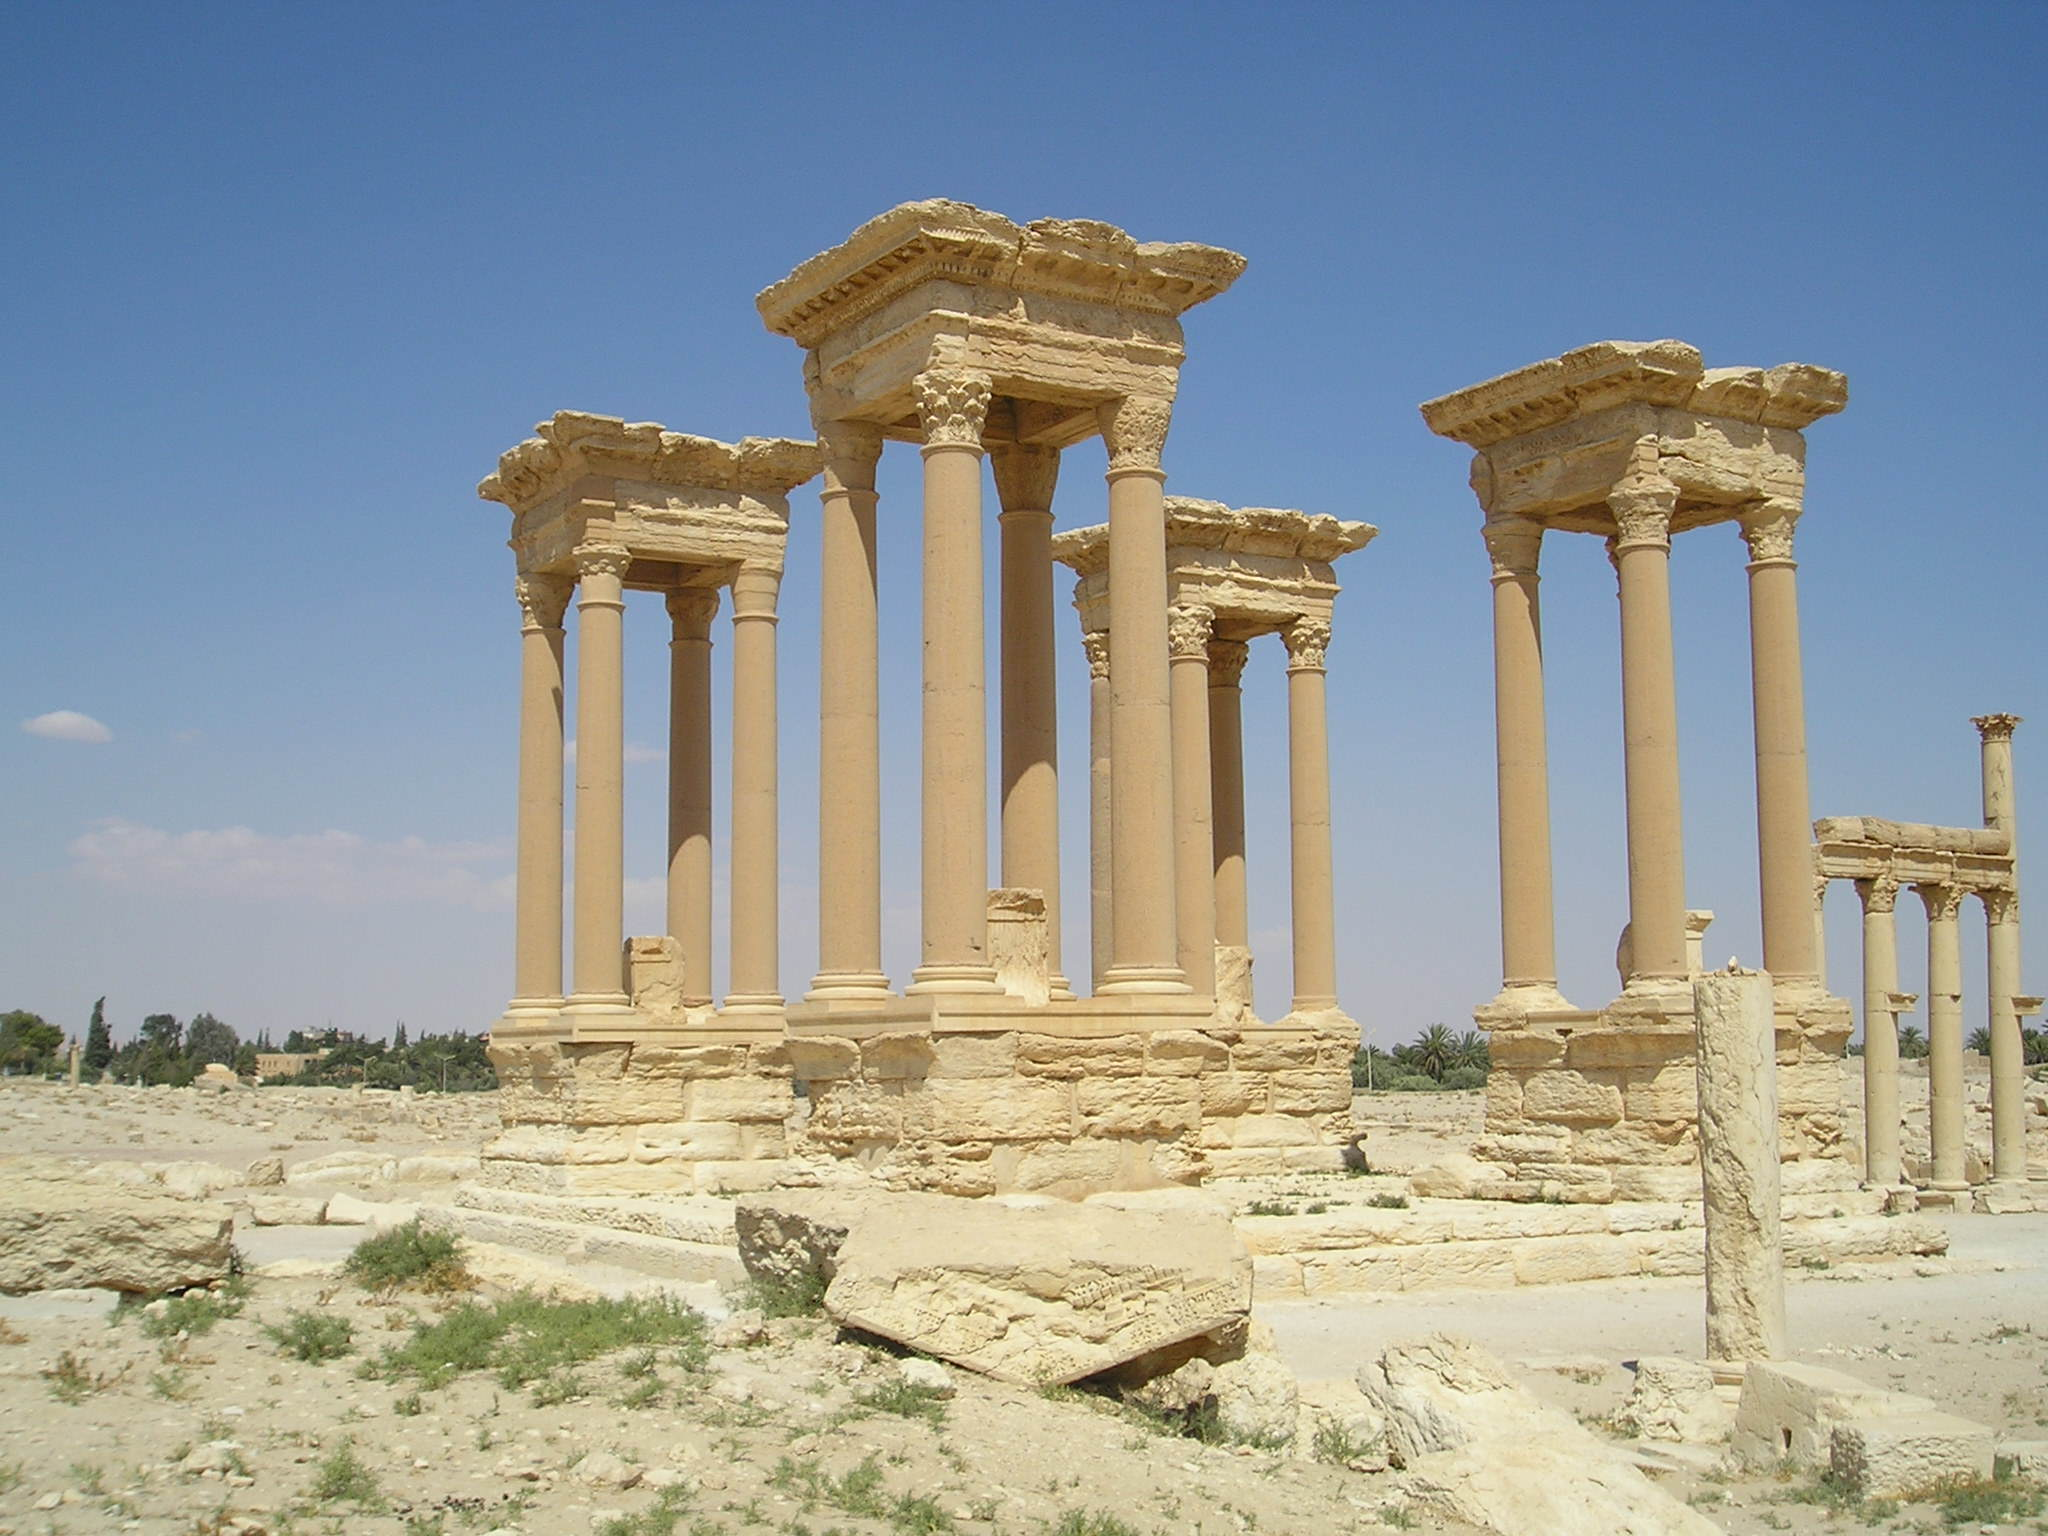 Palmyra Tetrapylon Shocking Photos Show How An Ancient City Was Destroyed By ISIS